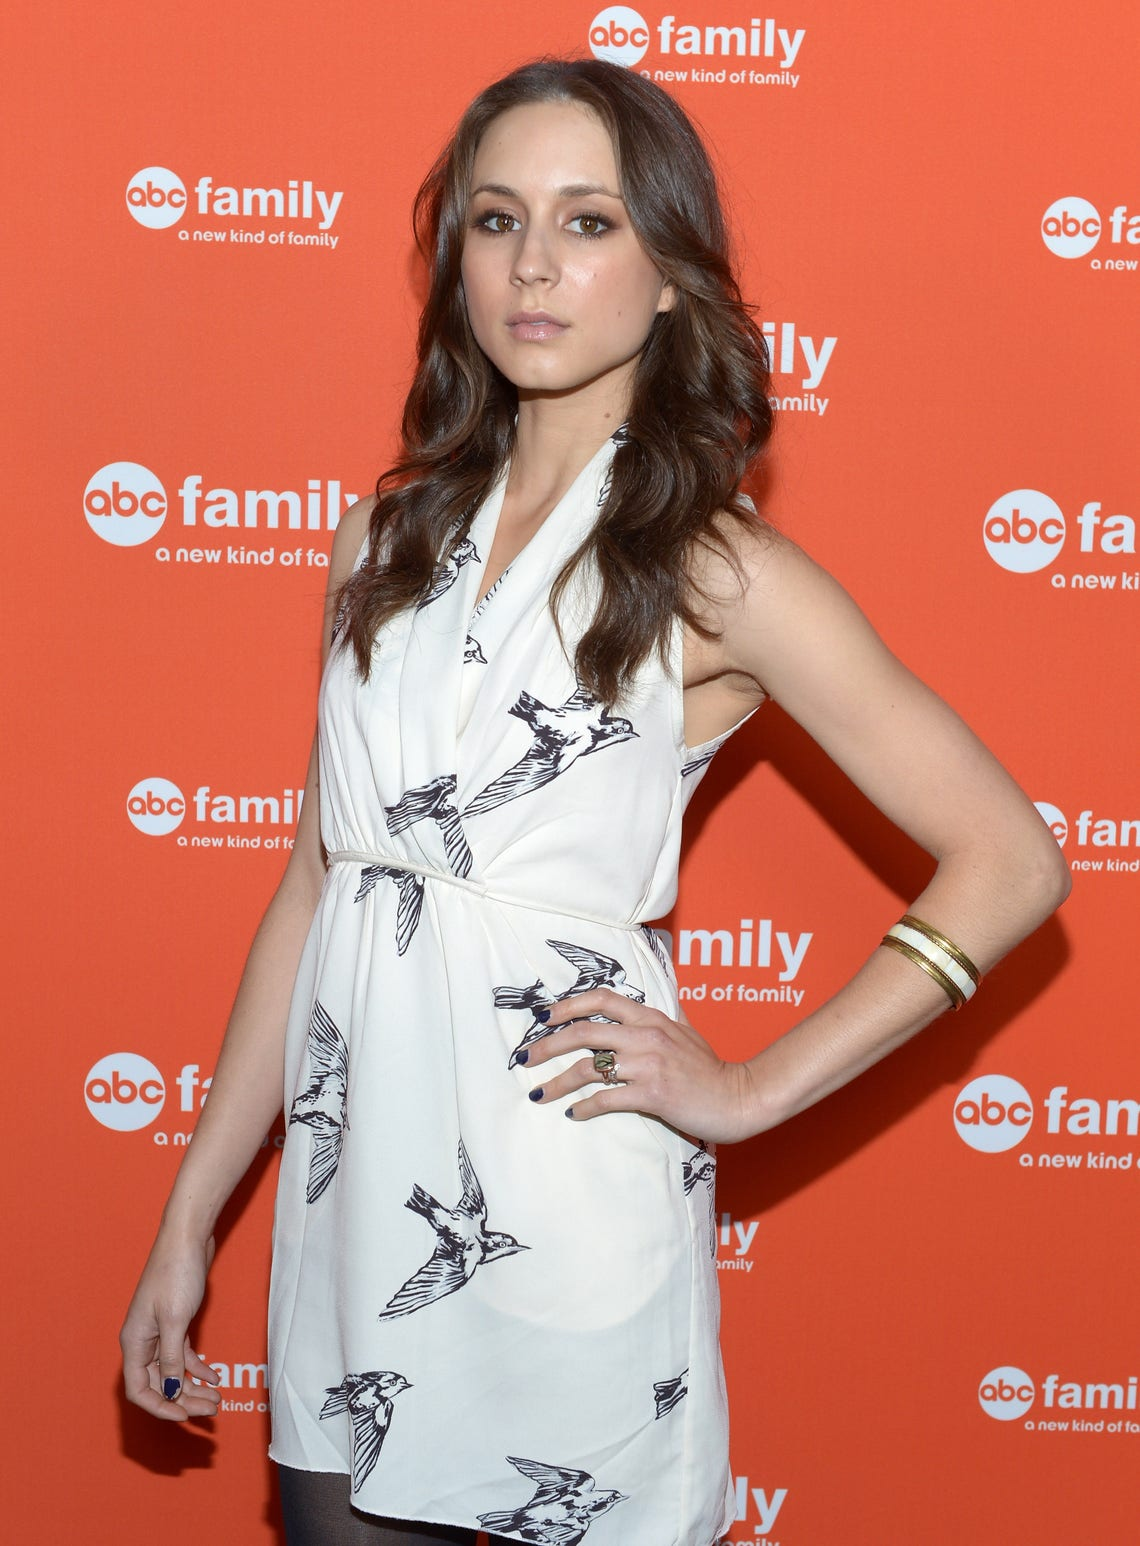 Abc Family West Coast Upfronts What is daren kagasoff whole name? toofab